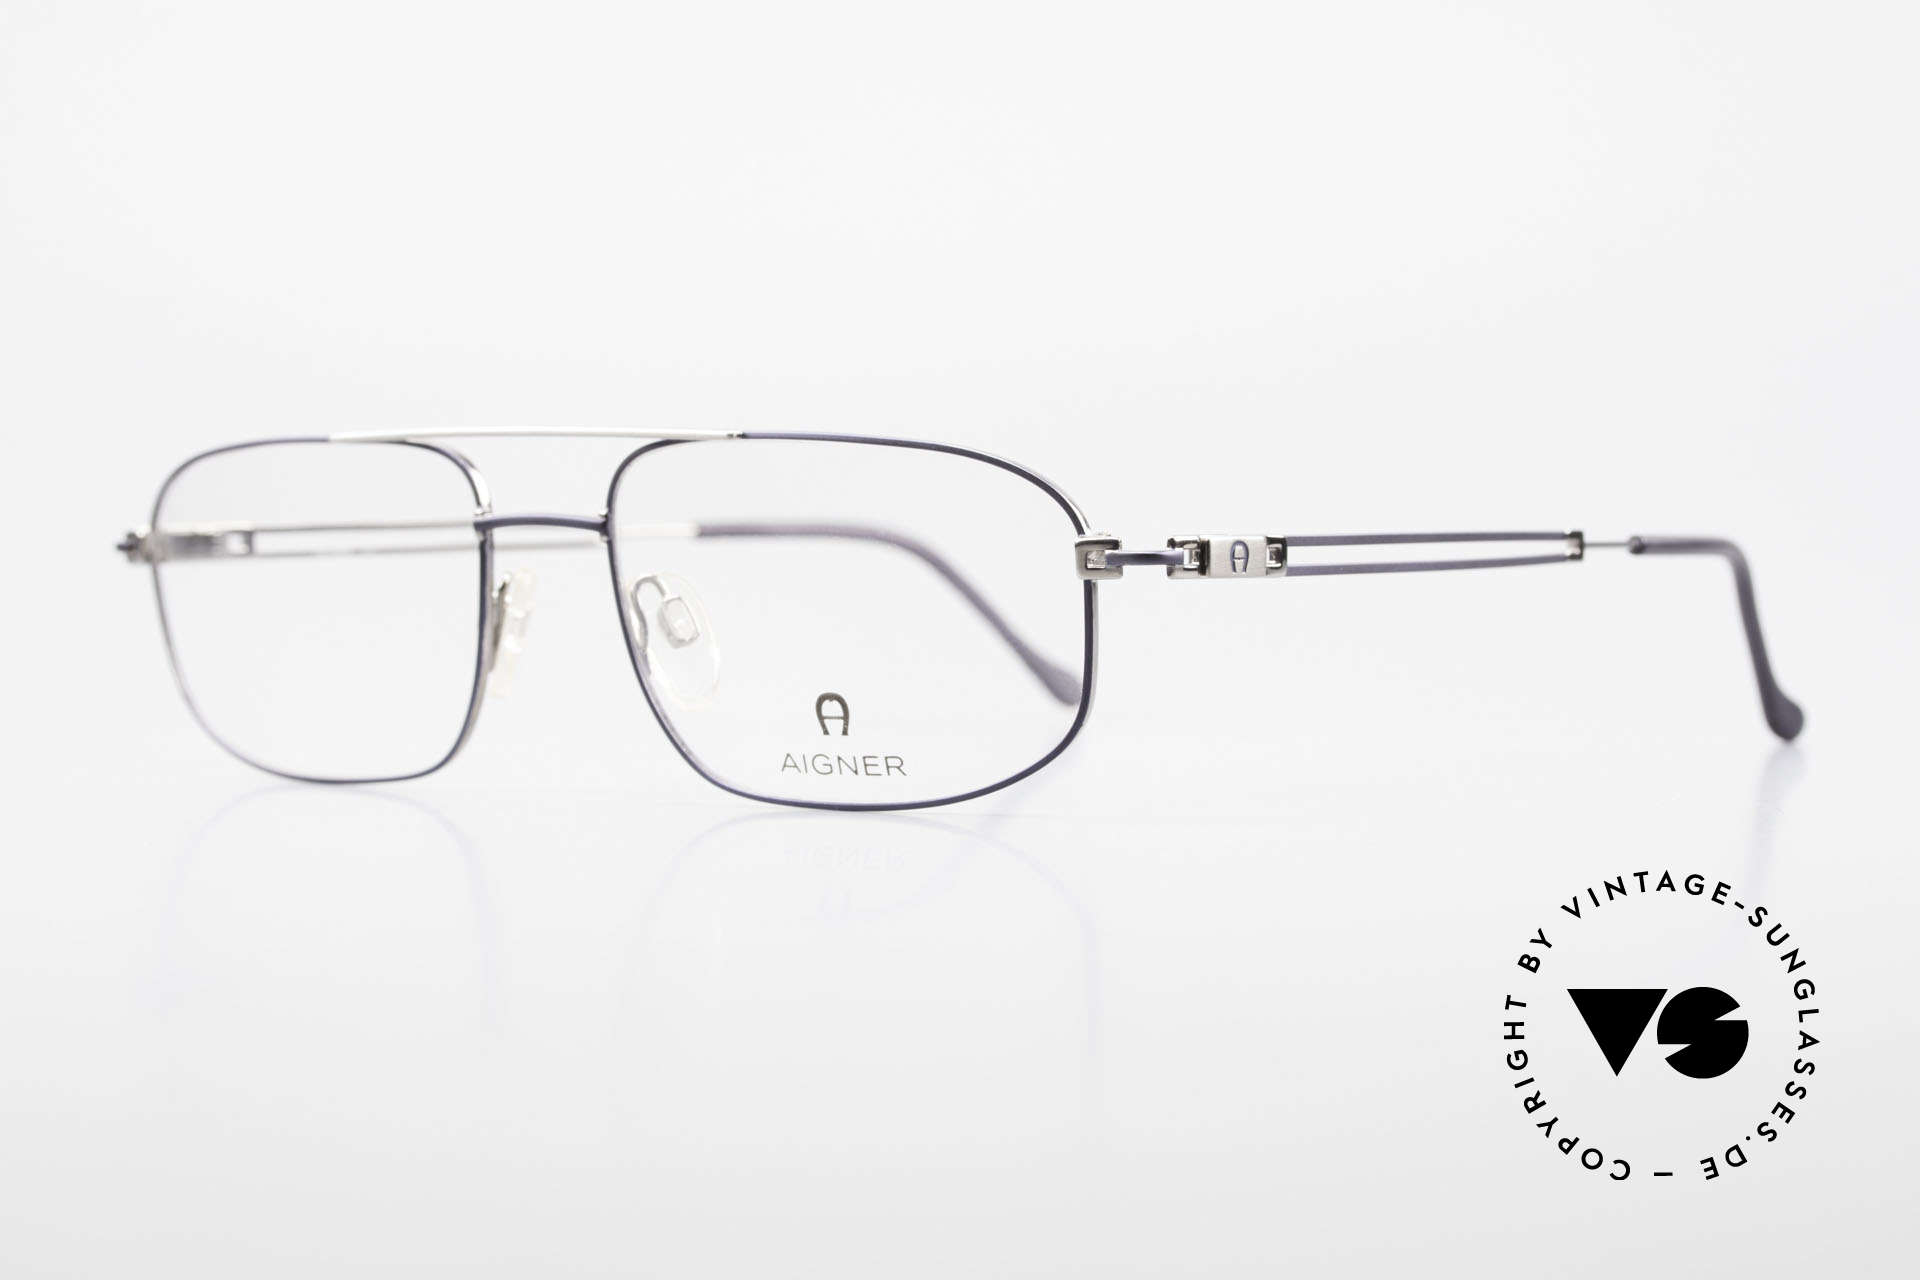 Aigner EA9111 90's Men's Eyeglasses Metal, top-notch quality and very pleasant to wear; lightweight, Made for Men